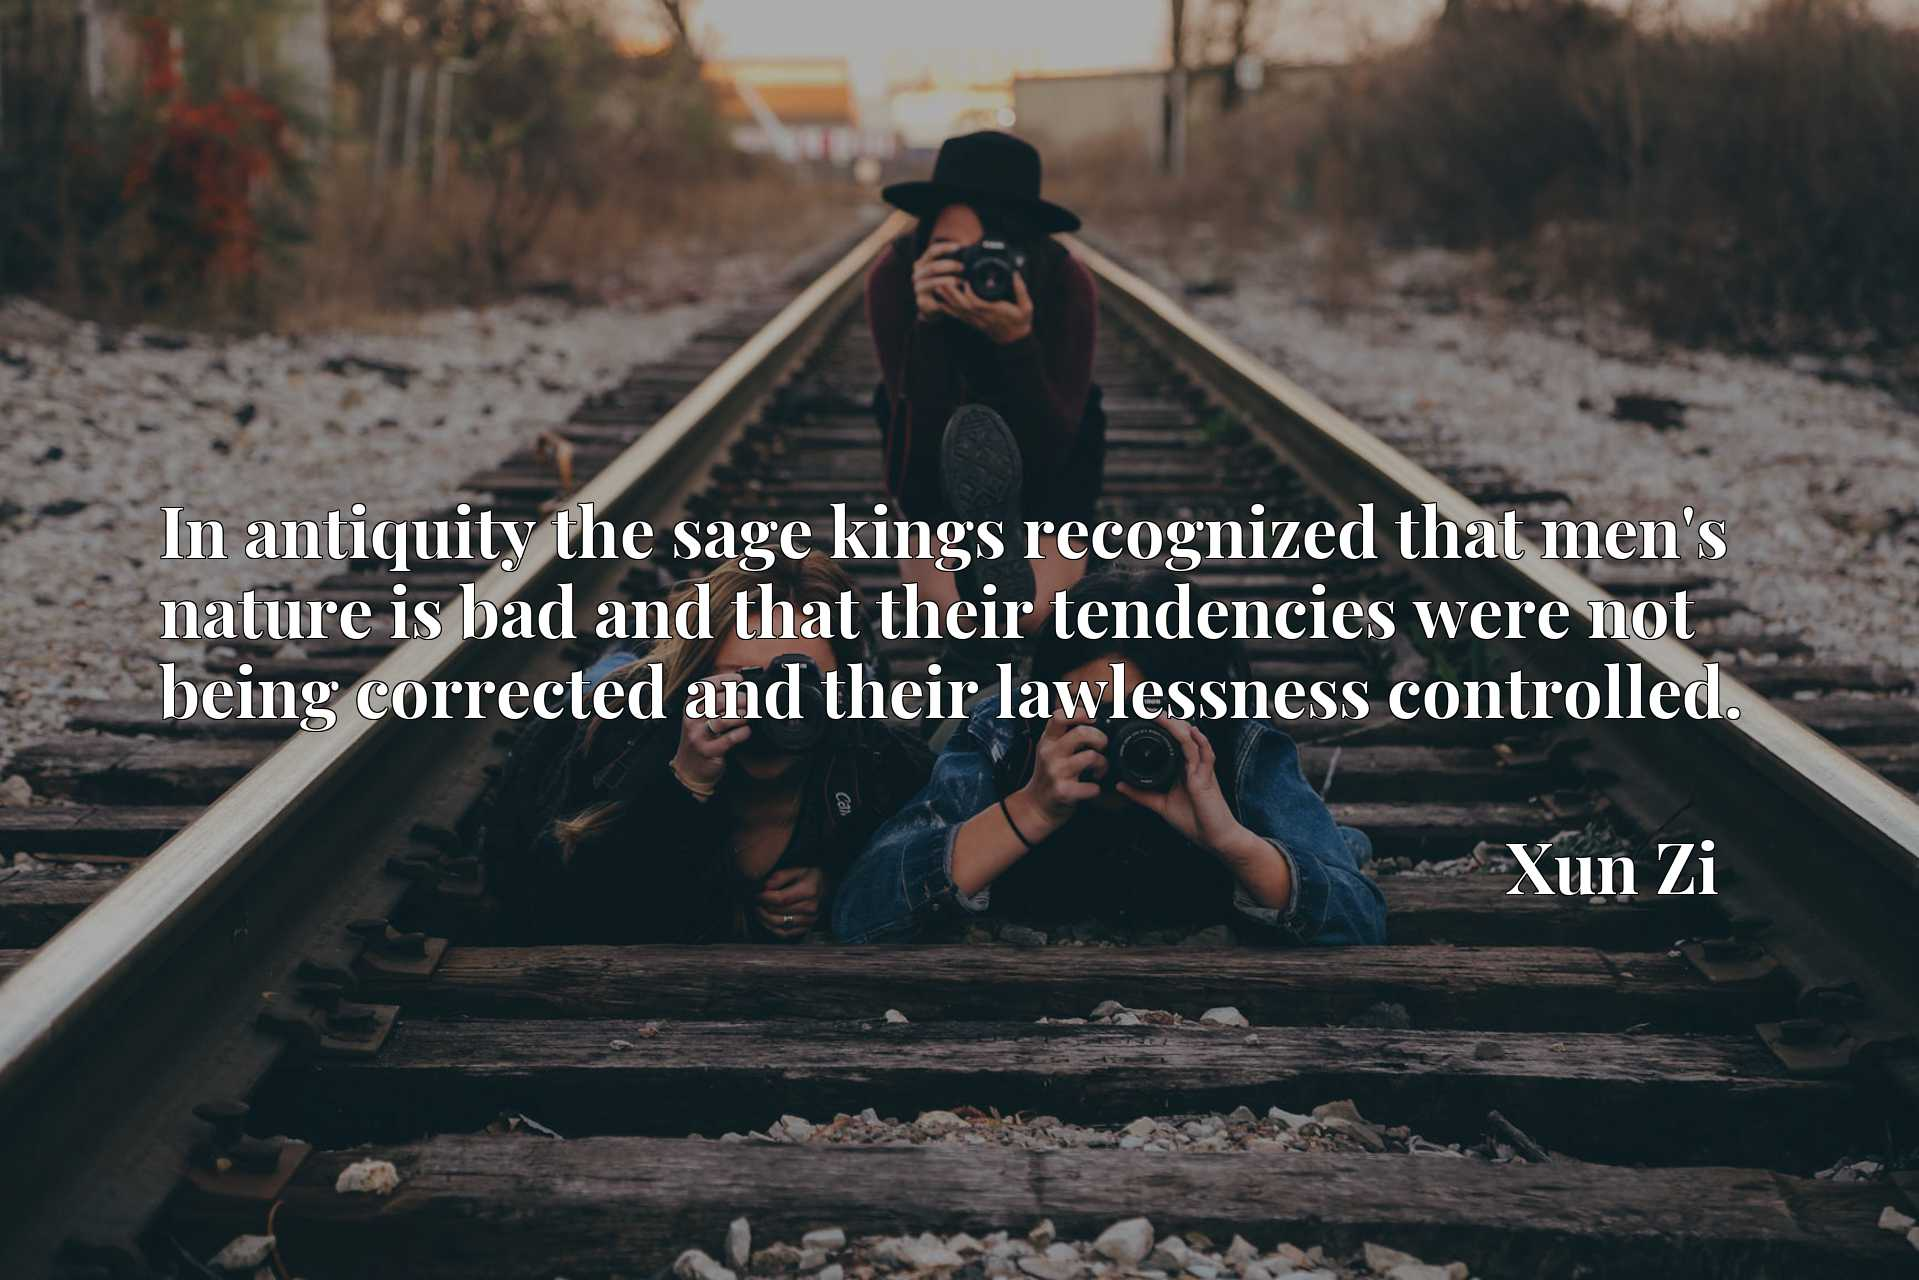 In antiquity the sage kings recognized that men's nature is bad and that their tendencies were not being corrected and their lawlessness controlled.